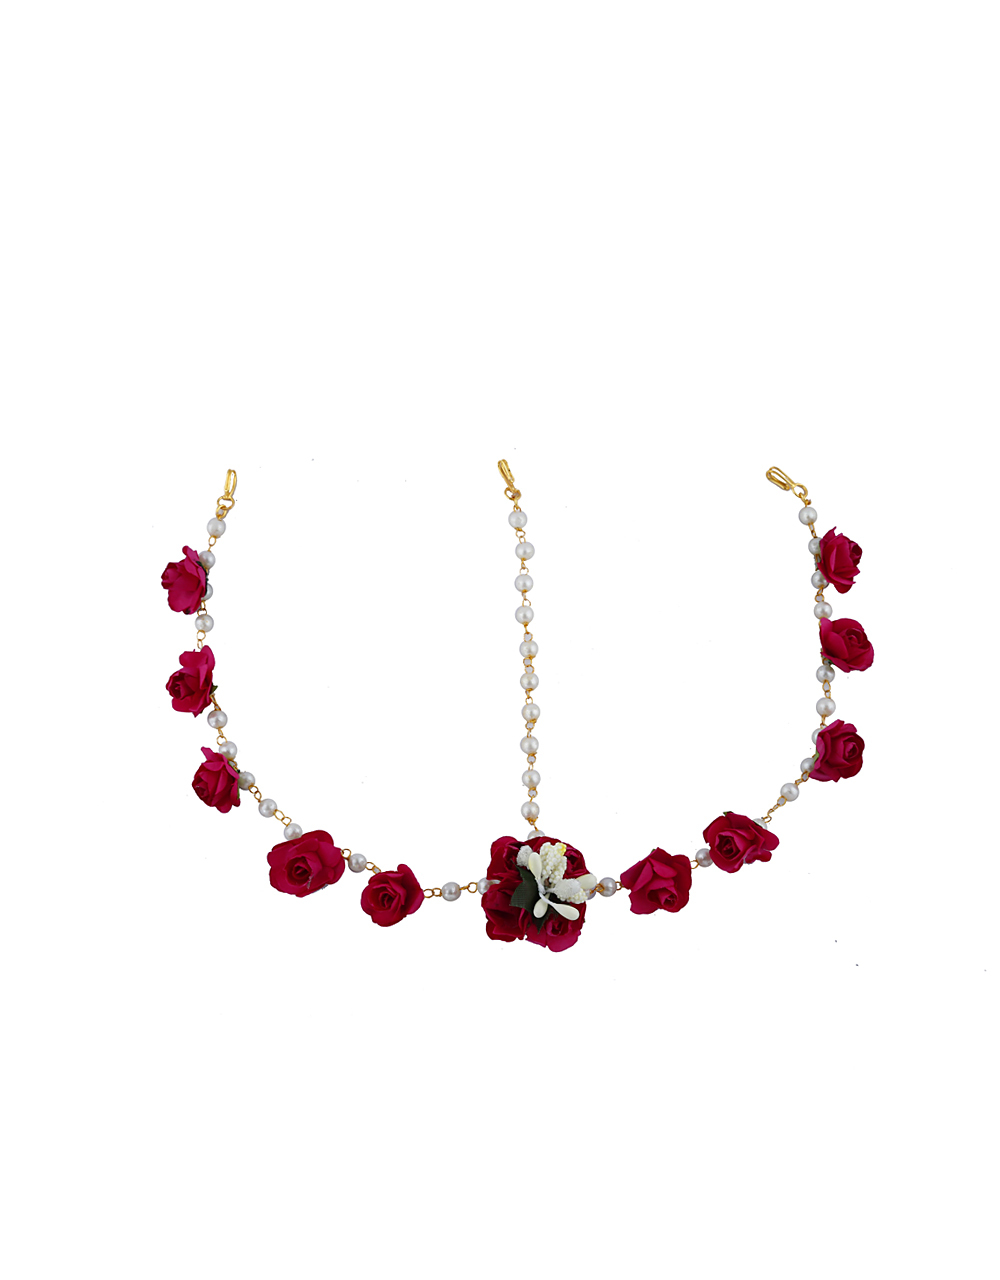 Beautiful White And Dark Ruby Pink Color Foam Flower With Pearl Beads Chain Flower Jewellery Set